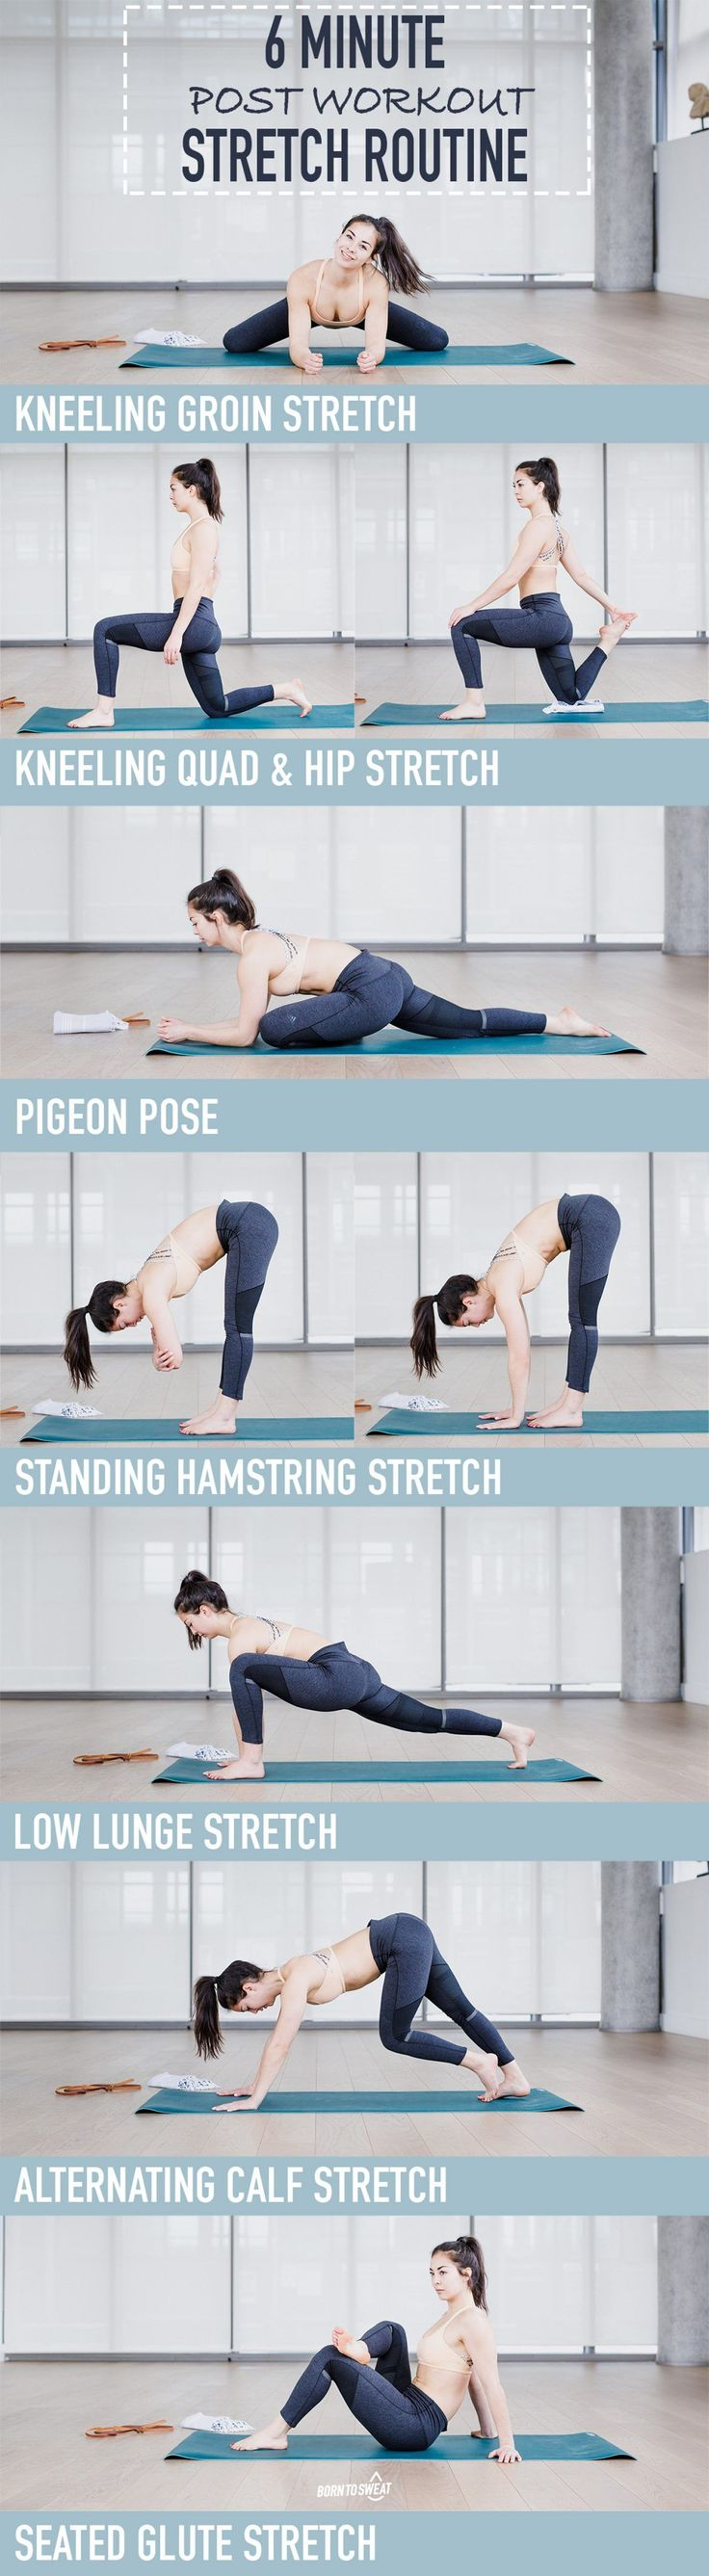 The 6 Minute Post-Workout Stretch Routine